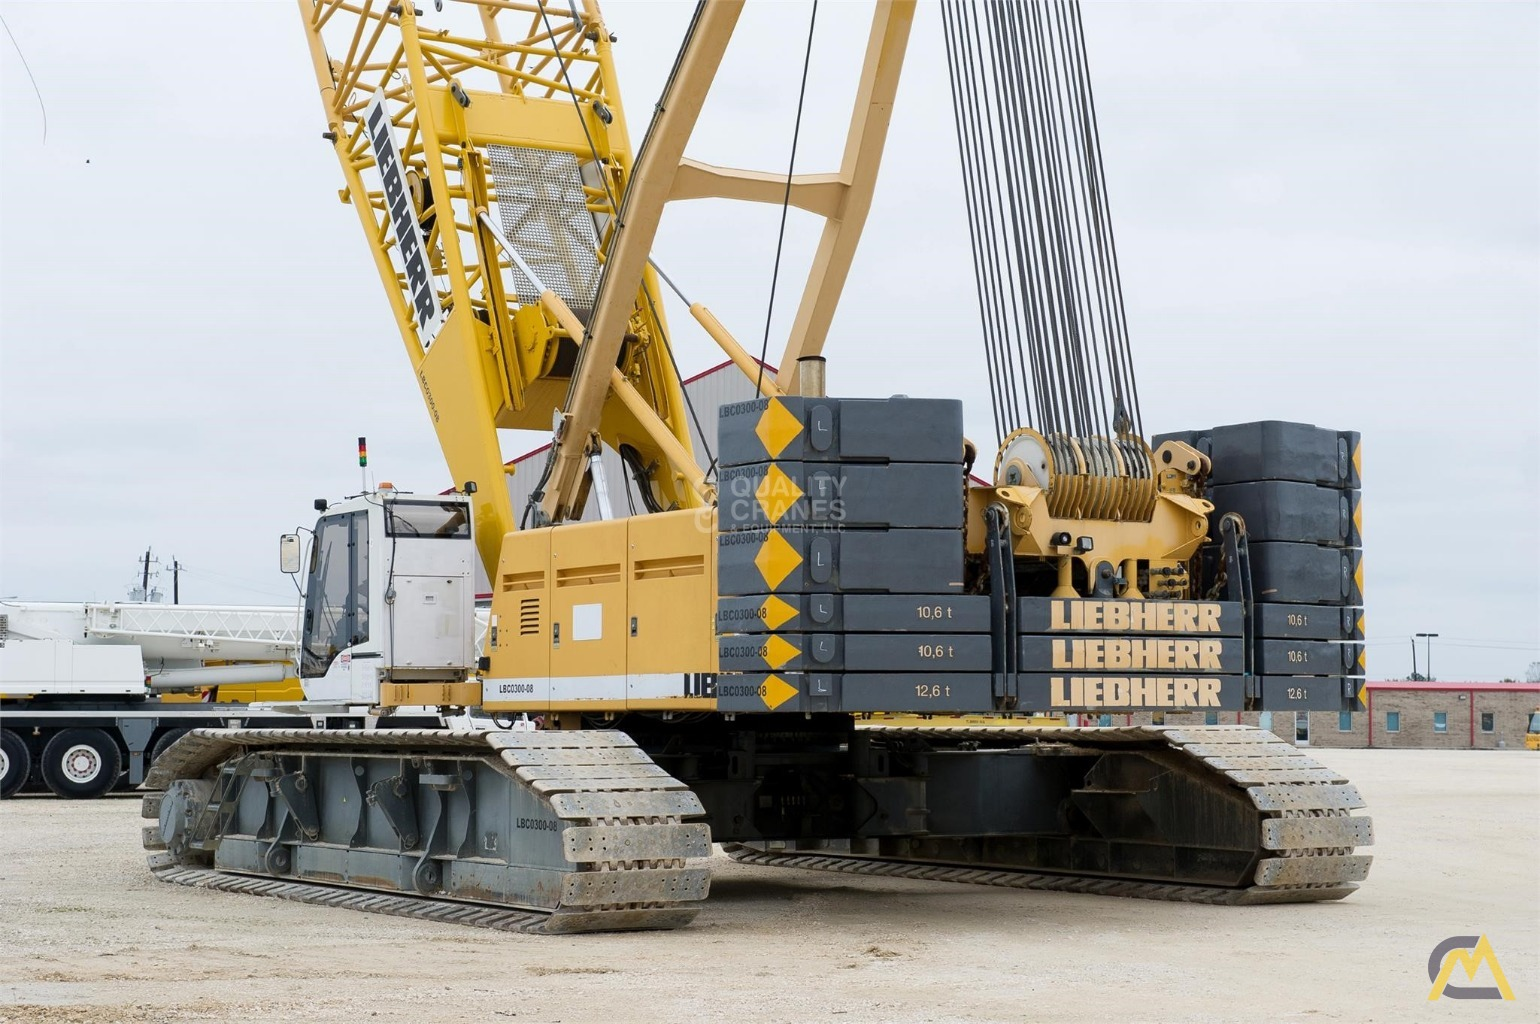 Liebherr LR 1280 300-Ton Lattice Boom Crawler Crane 12